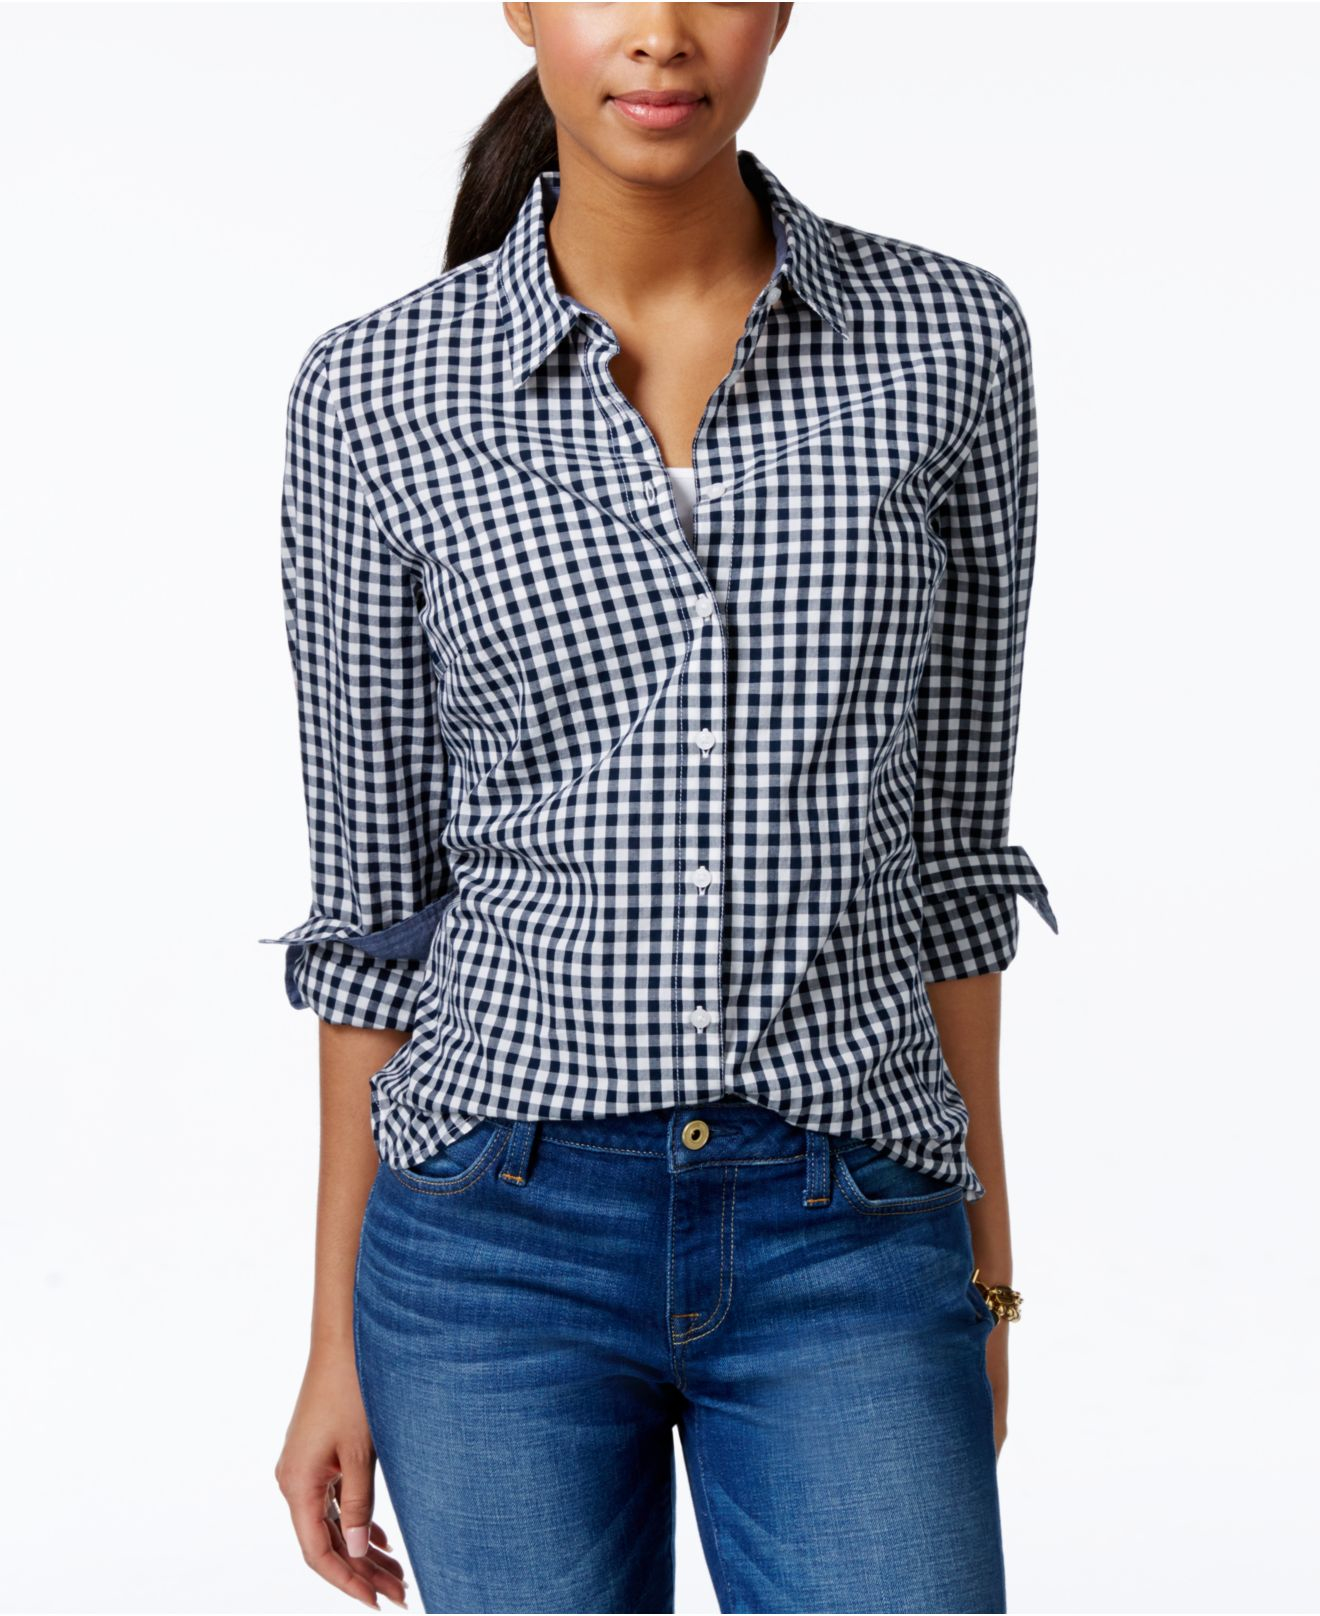 Tommy hilfiger Gingham Shirt in Blue | Lyst